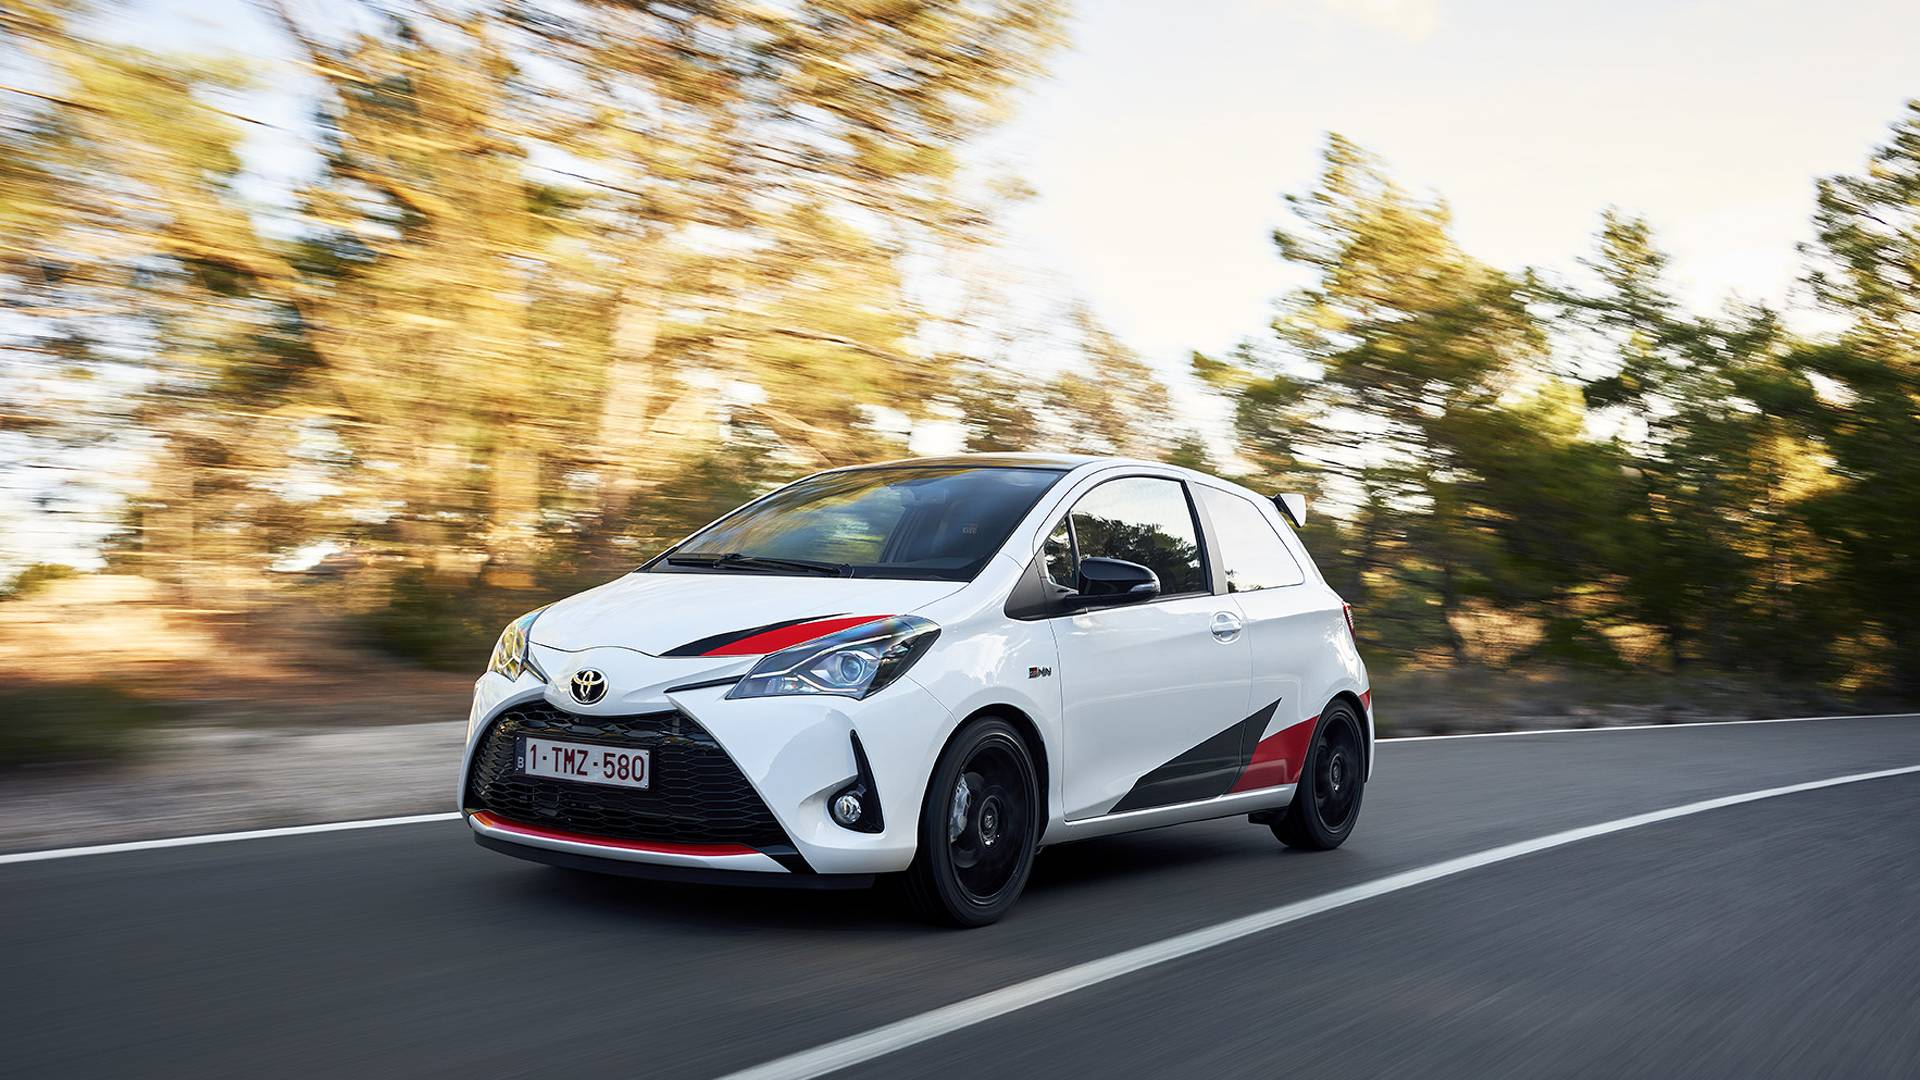 See The Supercharged Toyota Yaris GRMN Go From 0 To 100 MPH